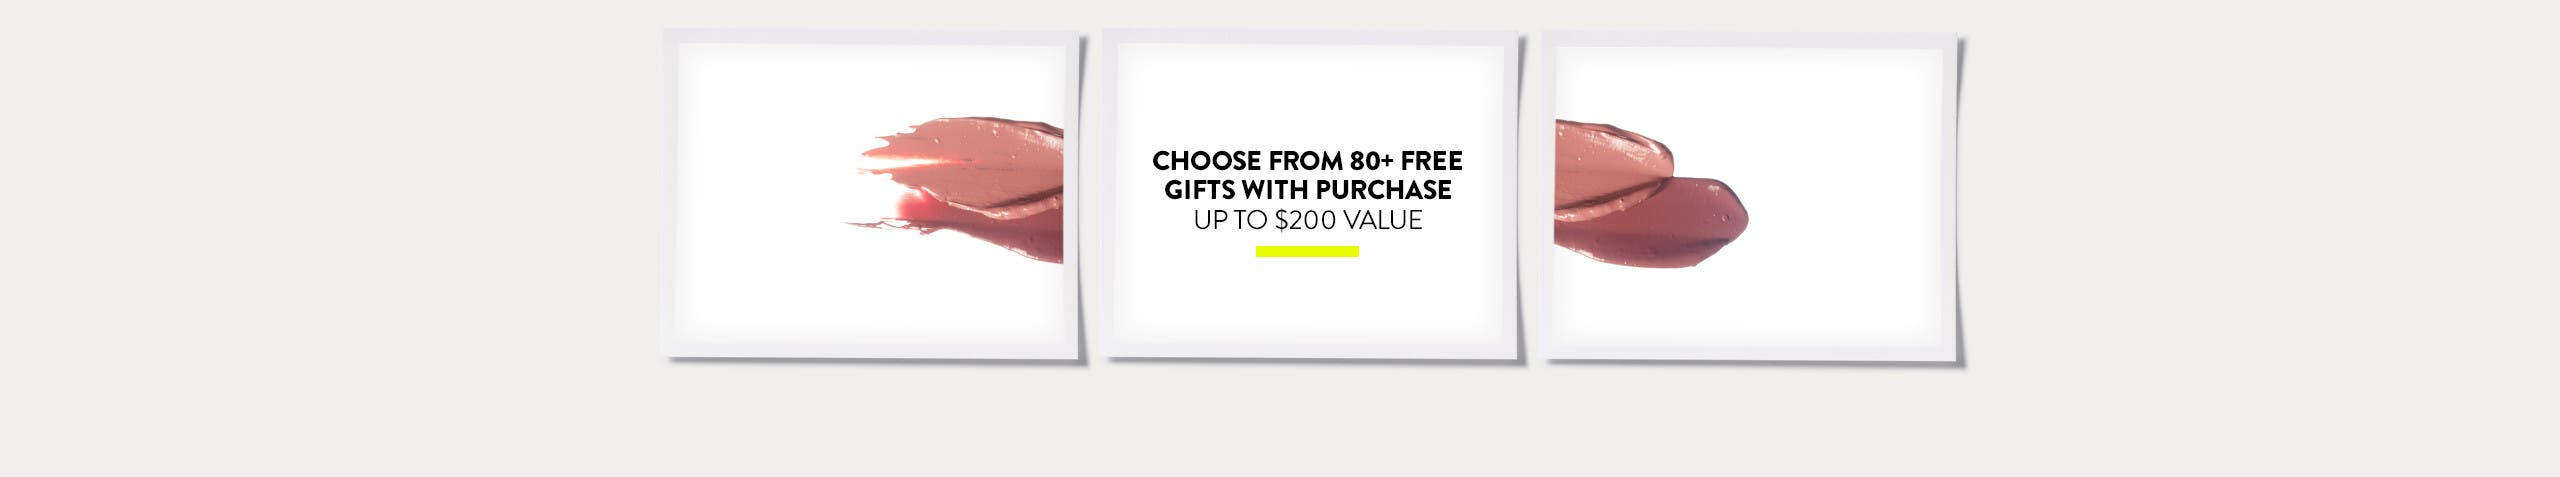 Choose from more than 80 free gifts with purchase. Up to $200 value.